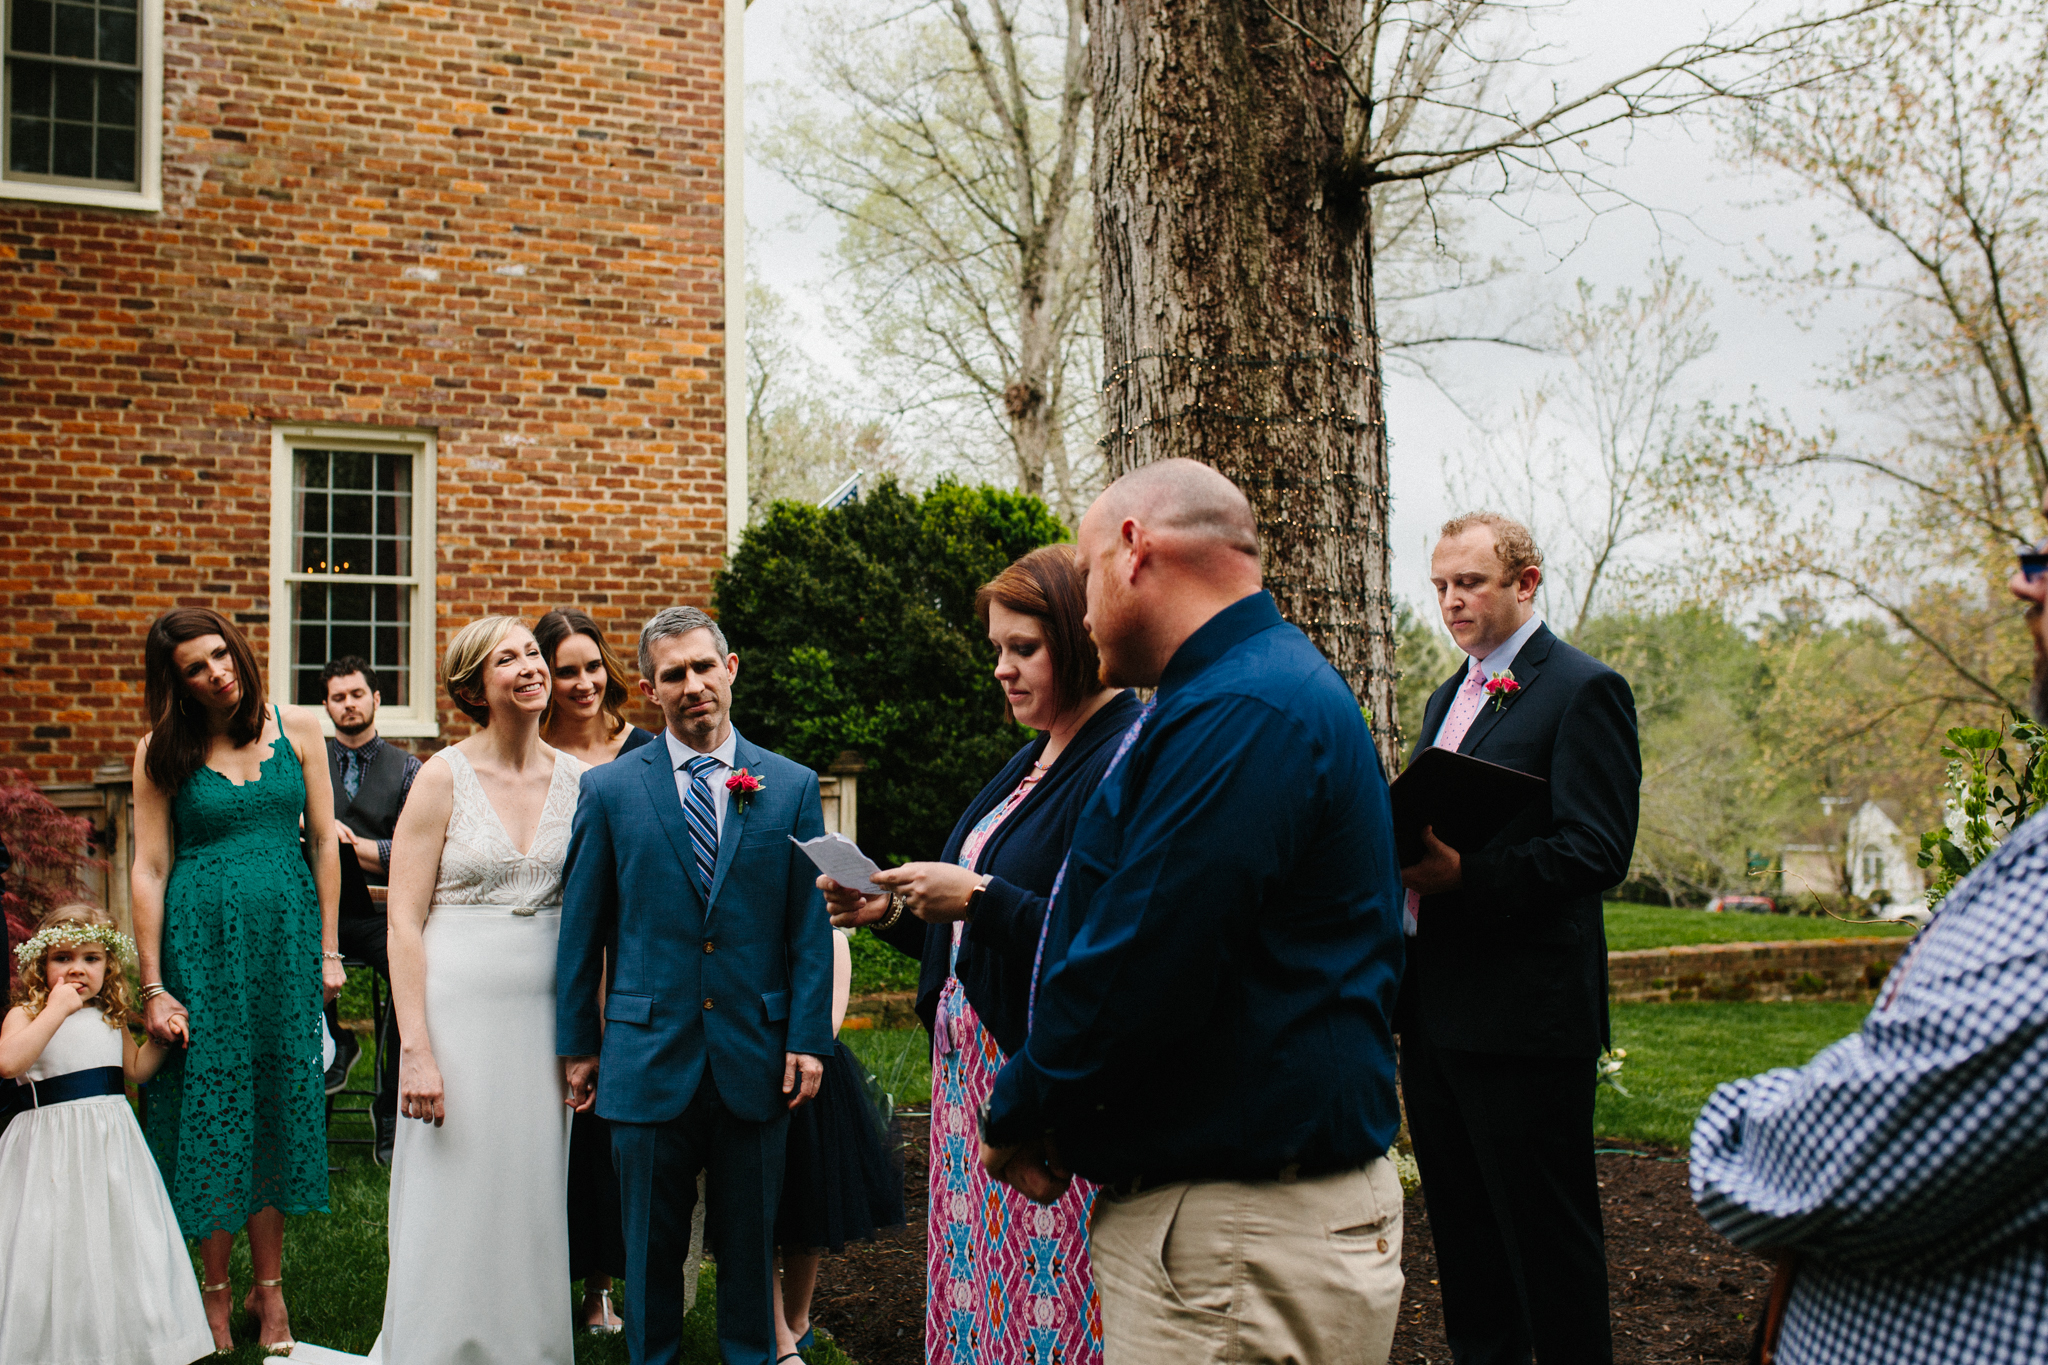 cook_wedding_richmond_virginia_rebecca_burt_photography-39.jpg